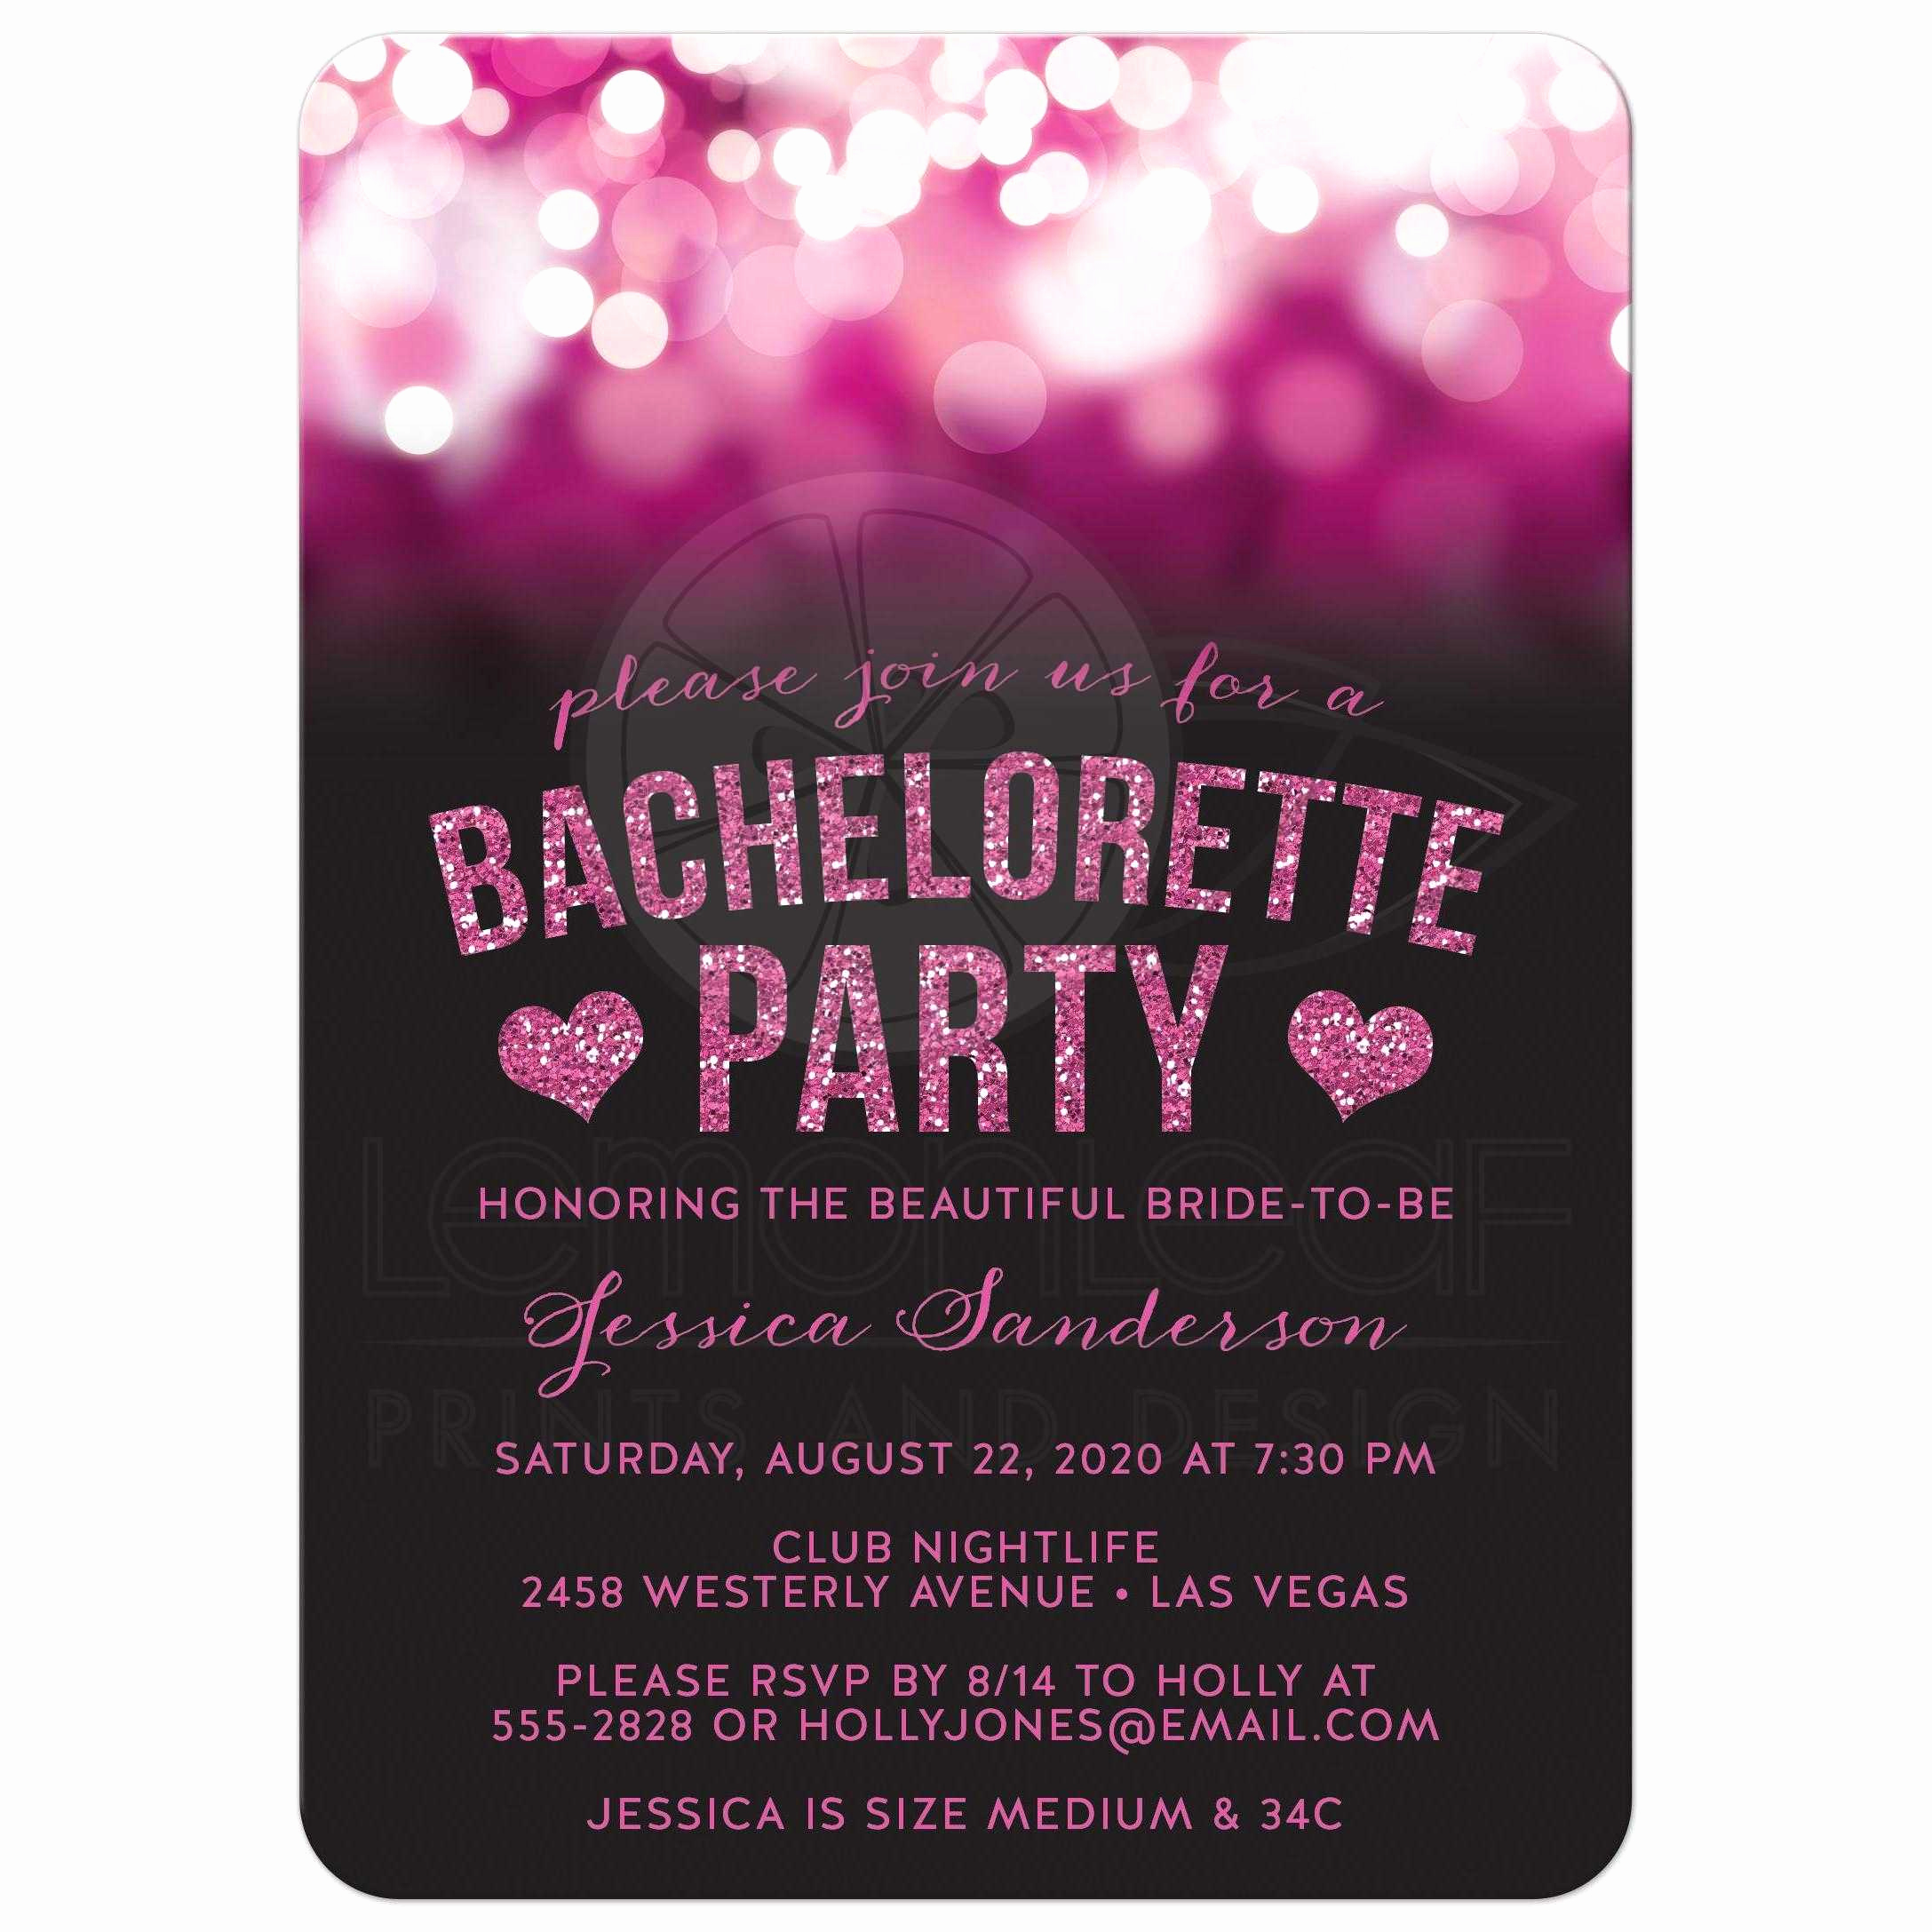 Bachelorette Party Invitation Ideas Unique Bachelorette Party Invitations Hot Pink Party Lights